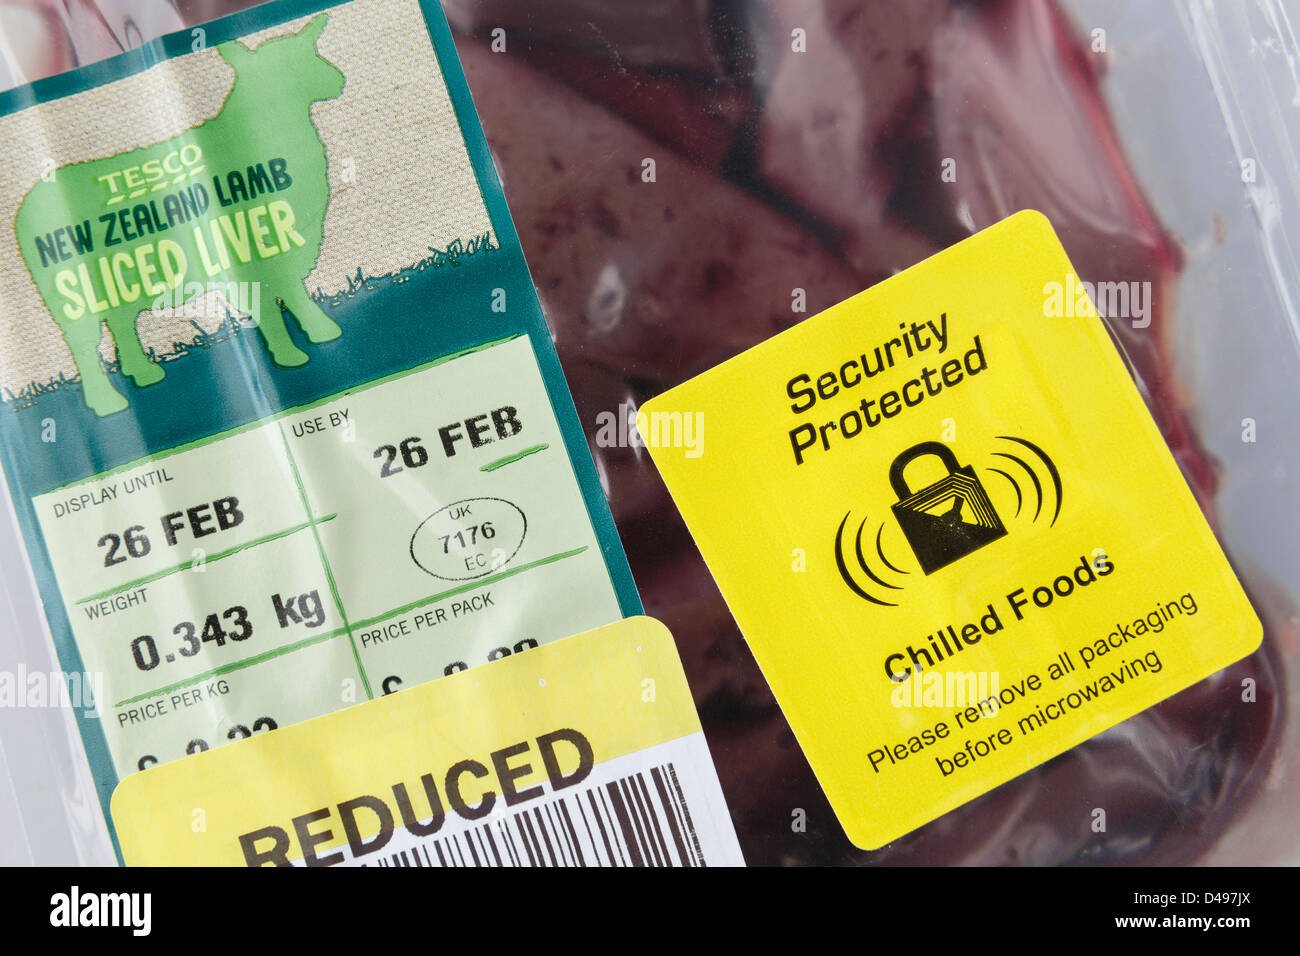 Yellow Security protected label for chilled foods on a reduced packet of fresh New Zealand Lamb sliced liver from - Stock Image